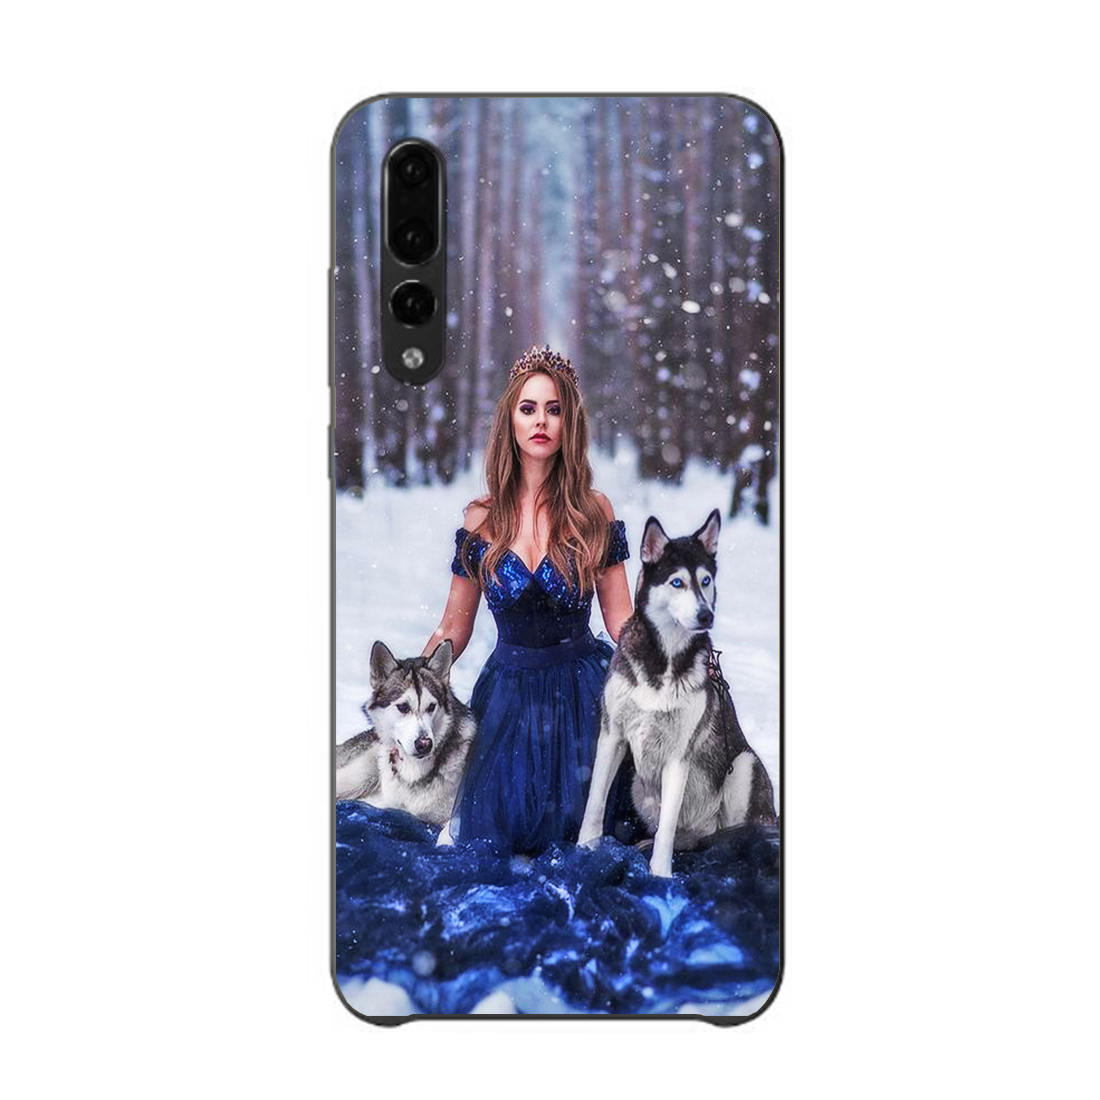 DK Customized DIY Printed Photo new Phone Black Sotf TPU Cover Case for Huawei p20 p10 p8 p9 lite series DIY painting PC cases in Half wrapped Cases from Cellphones Telecommunications